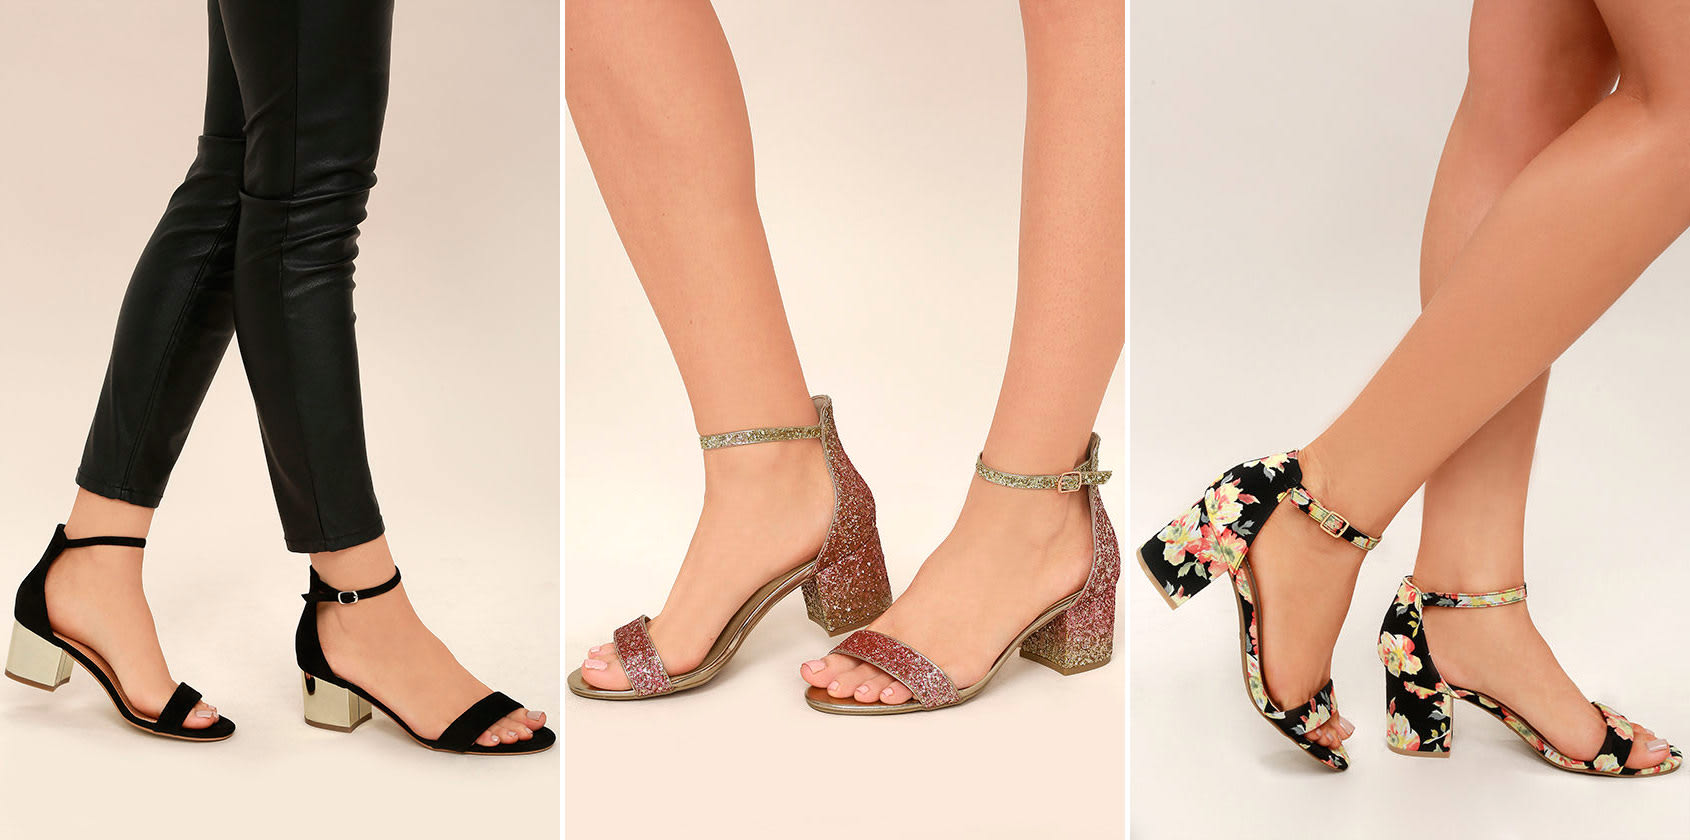 prom shoe styles - low block heel